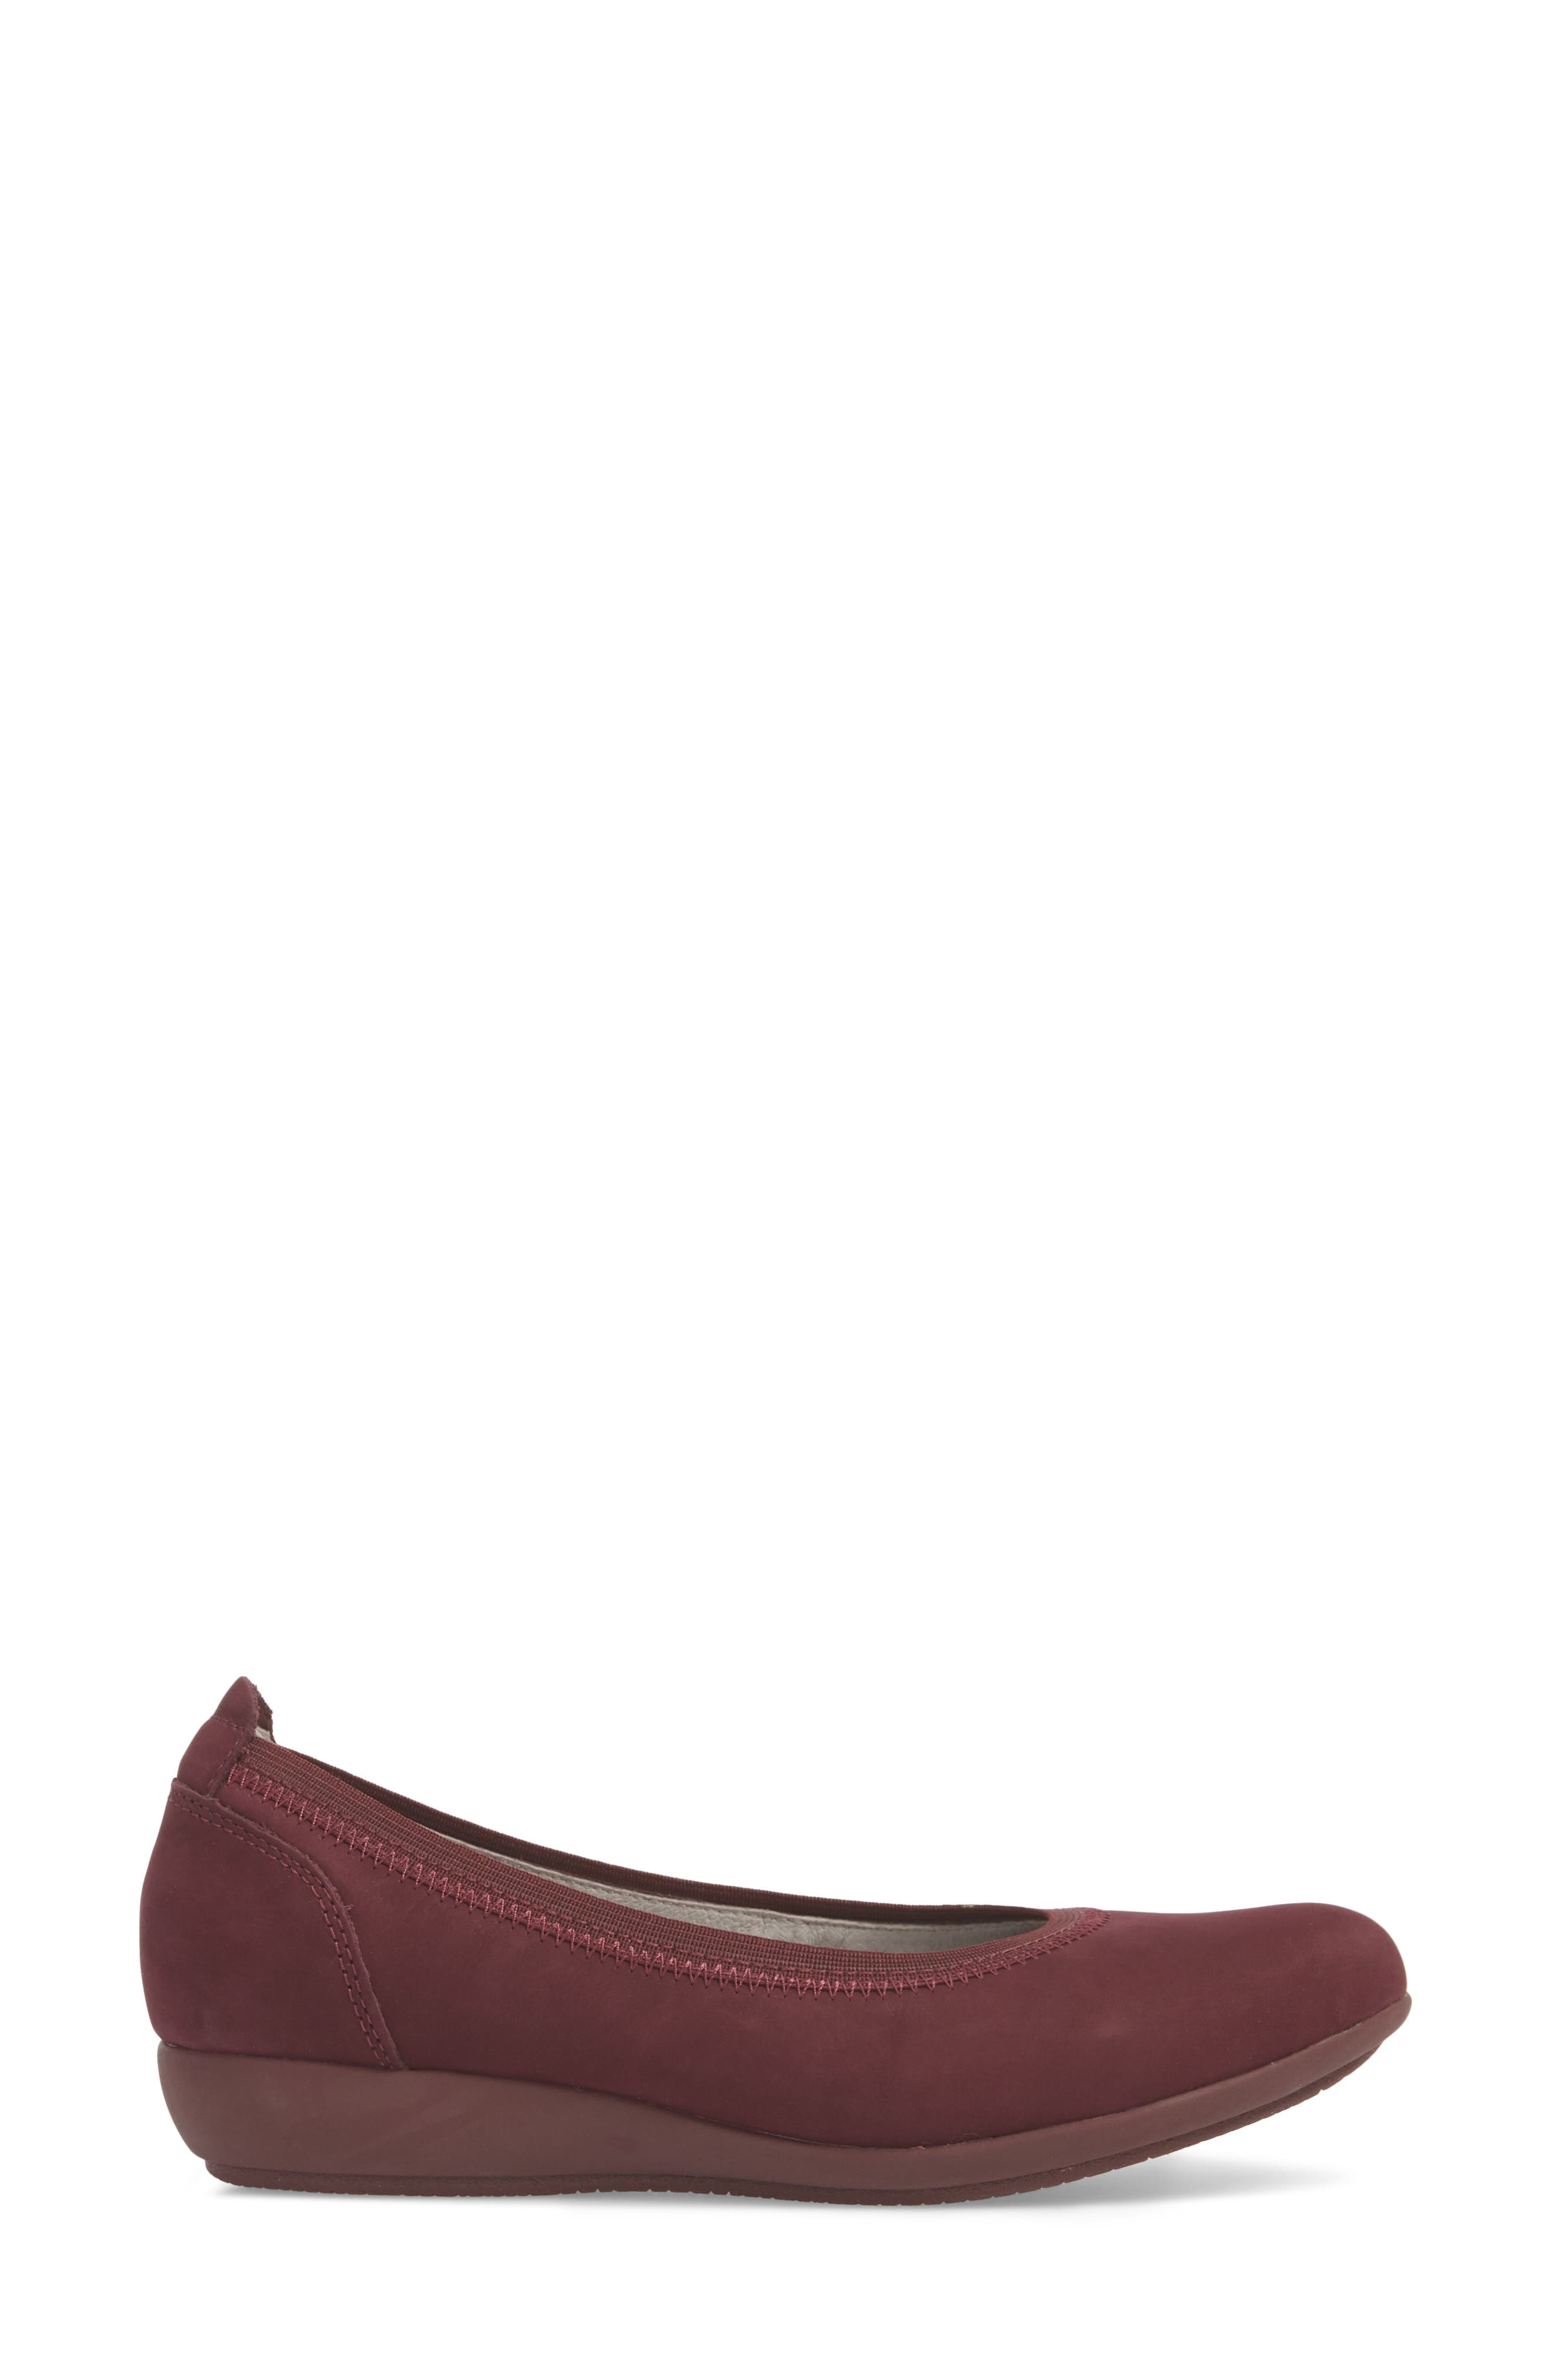 Kristen Ballet Flat,                             Alternate thumbnail 3, color,                             WINE MILLED NUBUCK